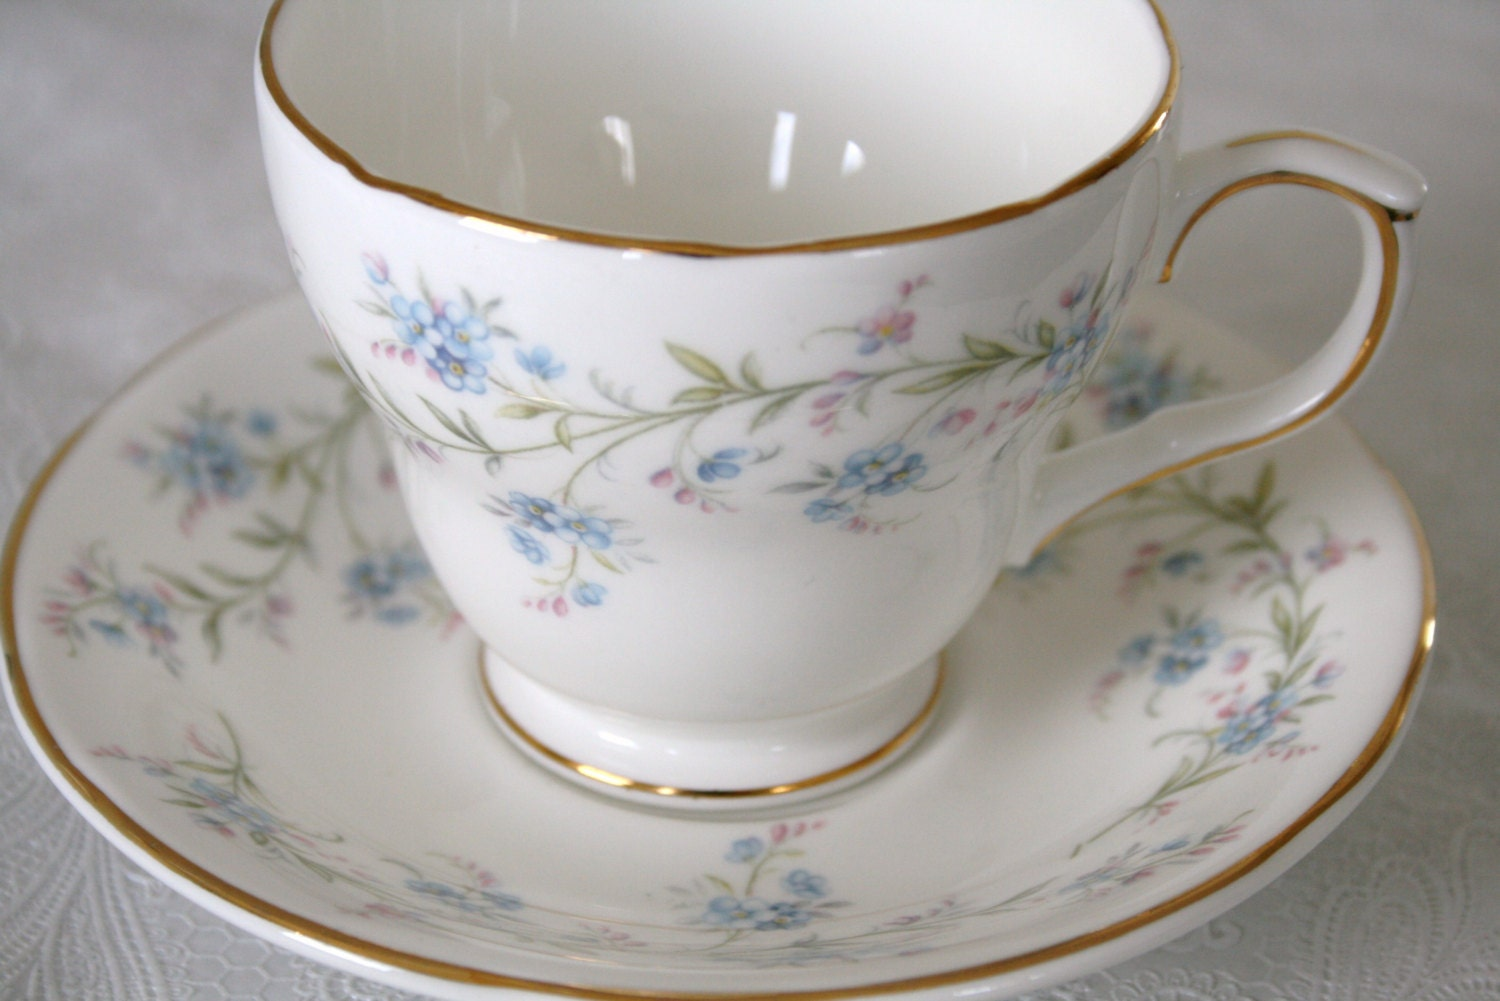 bone china made in england duchess tranquility elegant. Black Bedroom Furniture Sets. Home Design Ideas